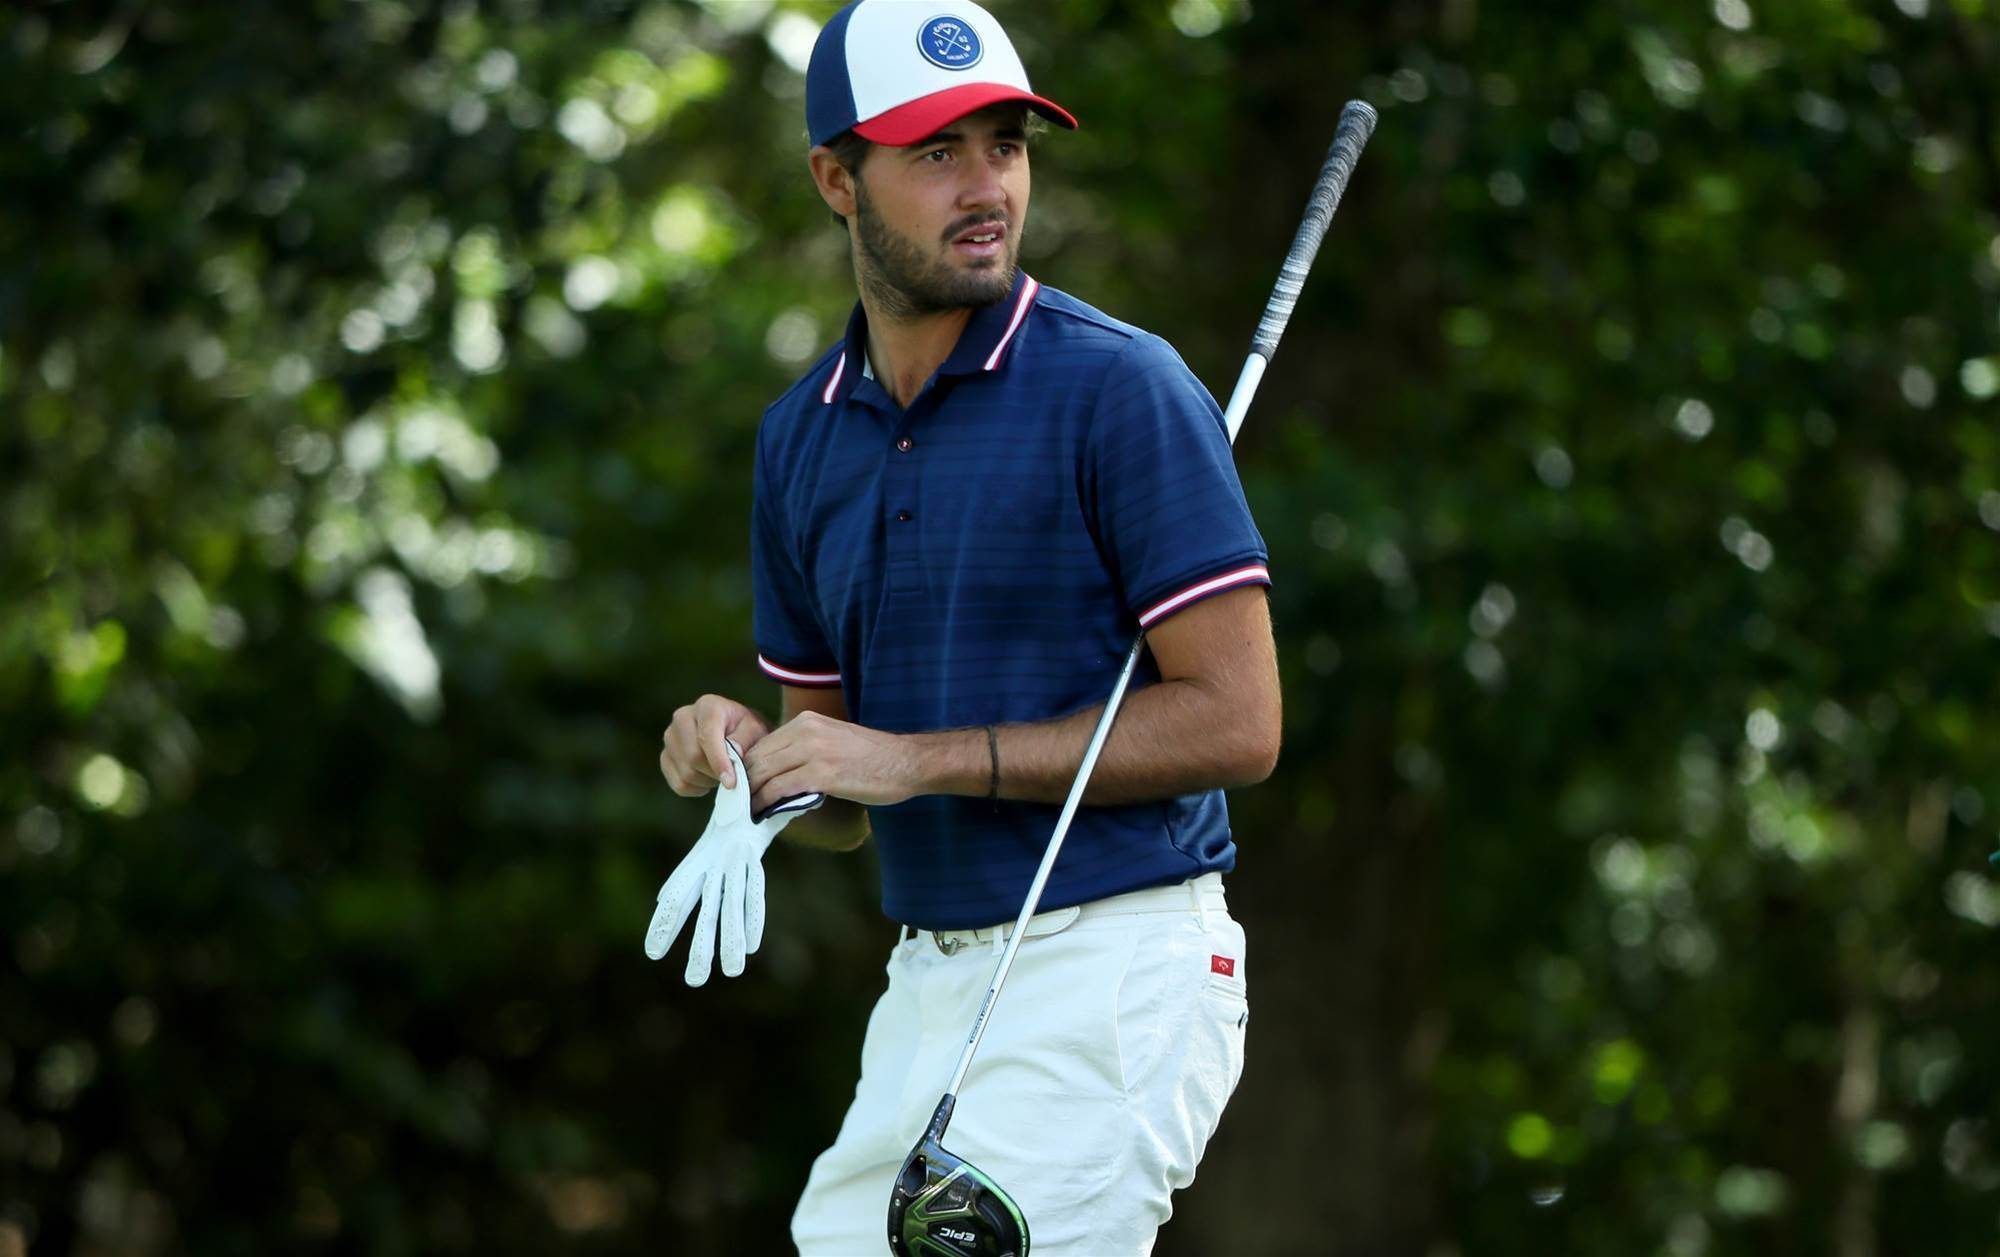 MASTERS: Curtis Luck joins the pro ranks